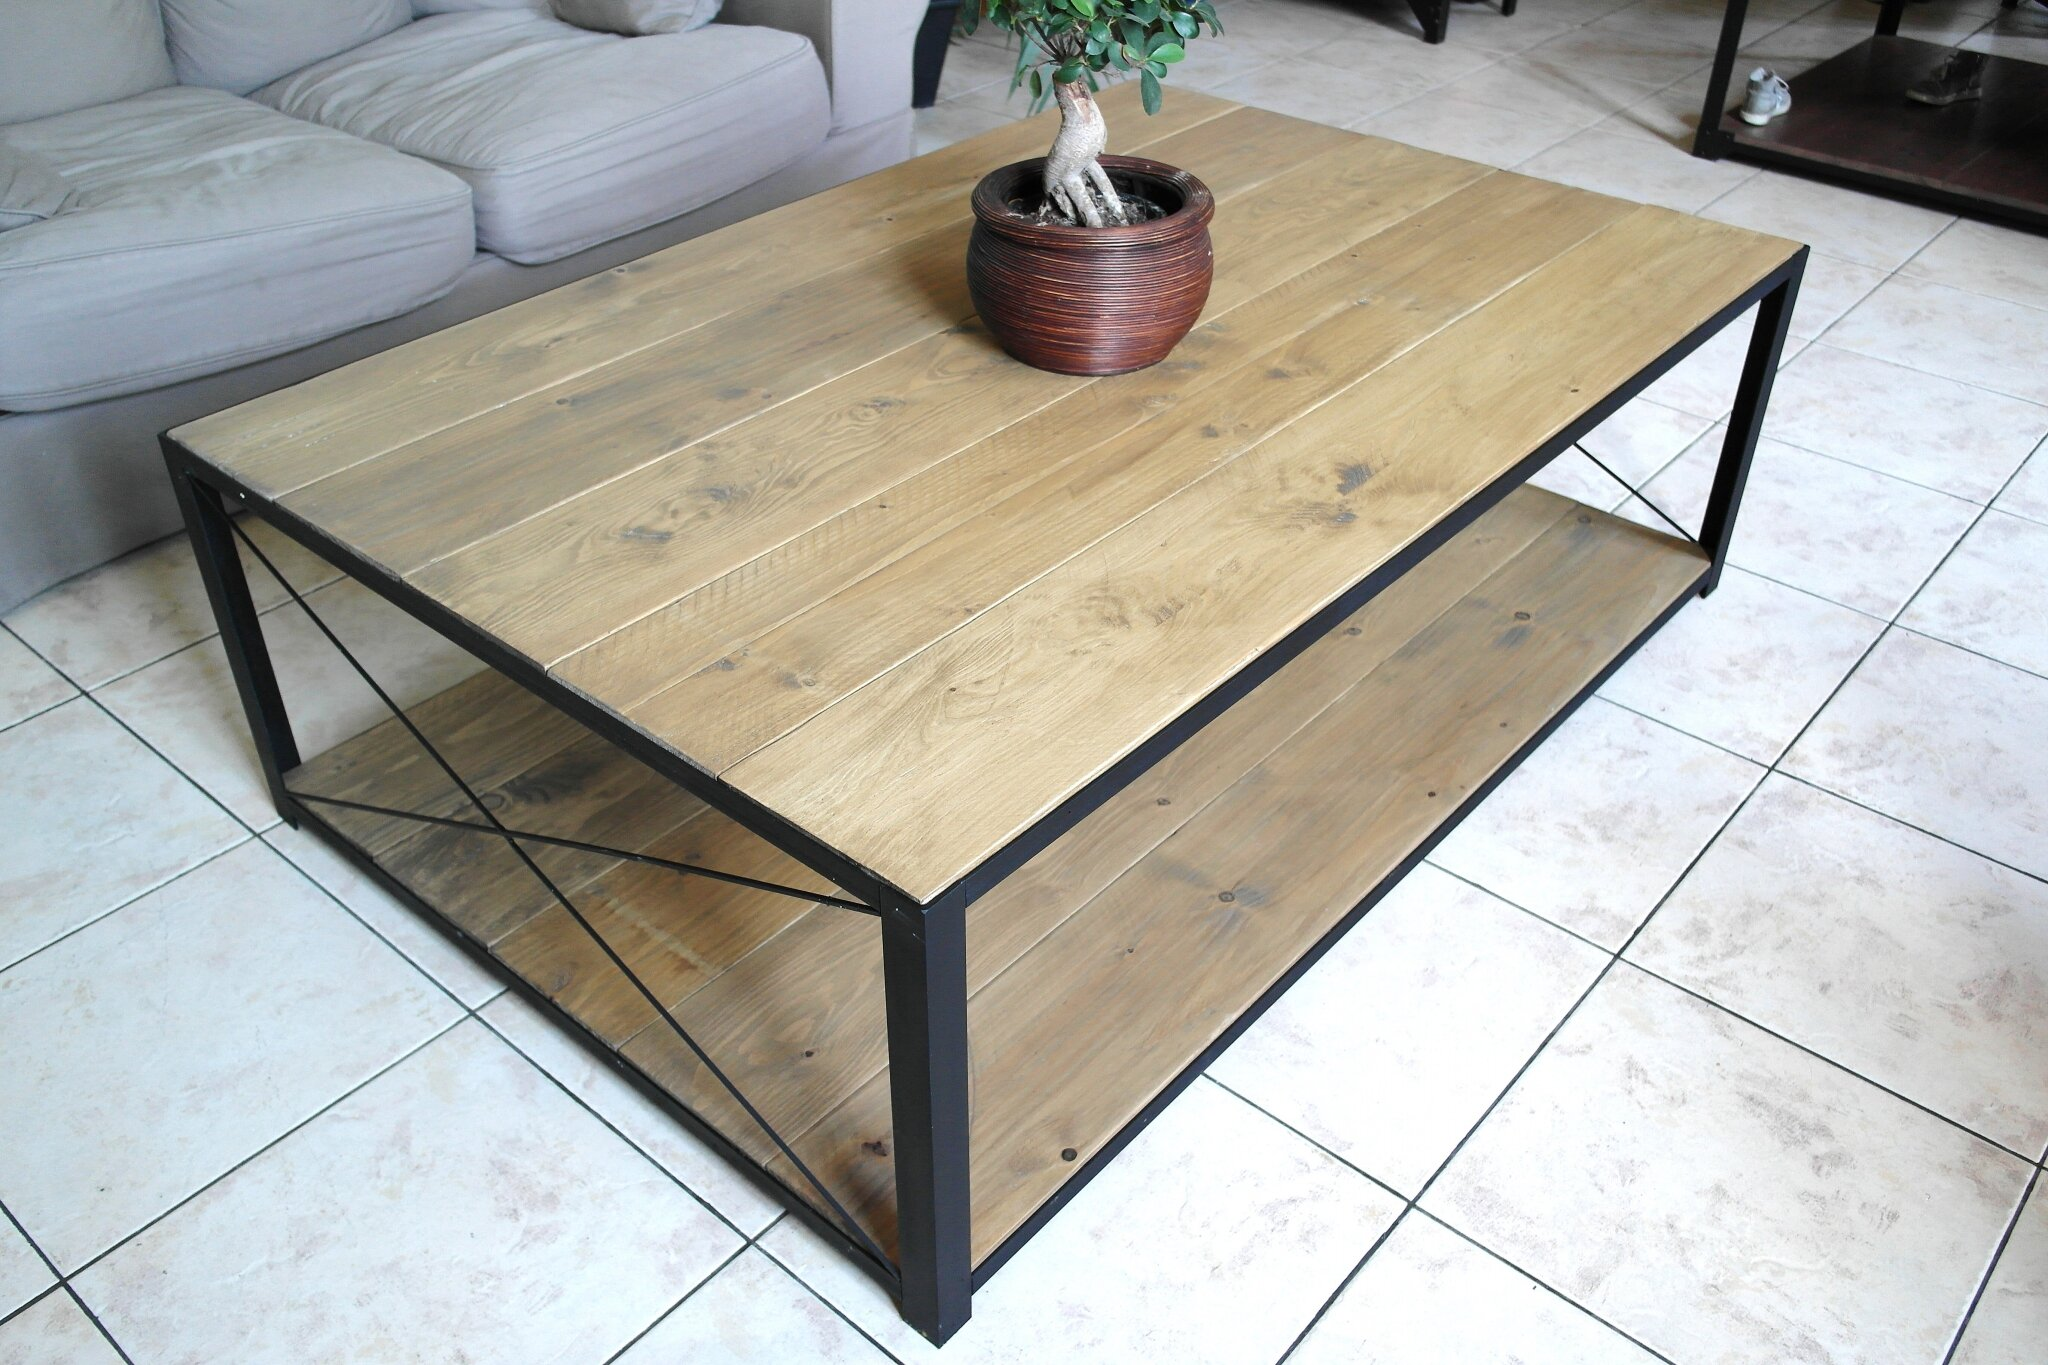 Grande table basse l 39 atelier broc loft - Table basse atelier loft ...